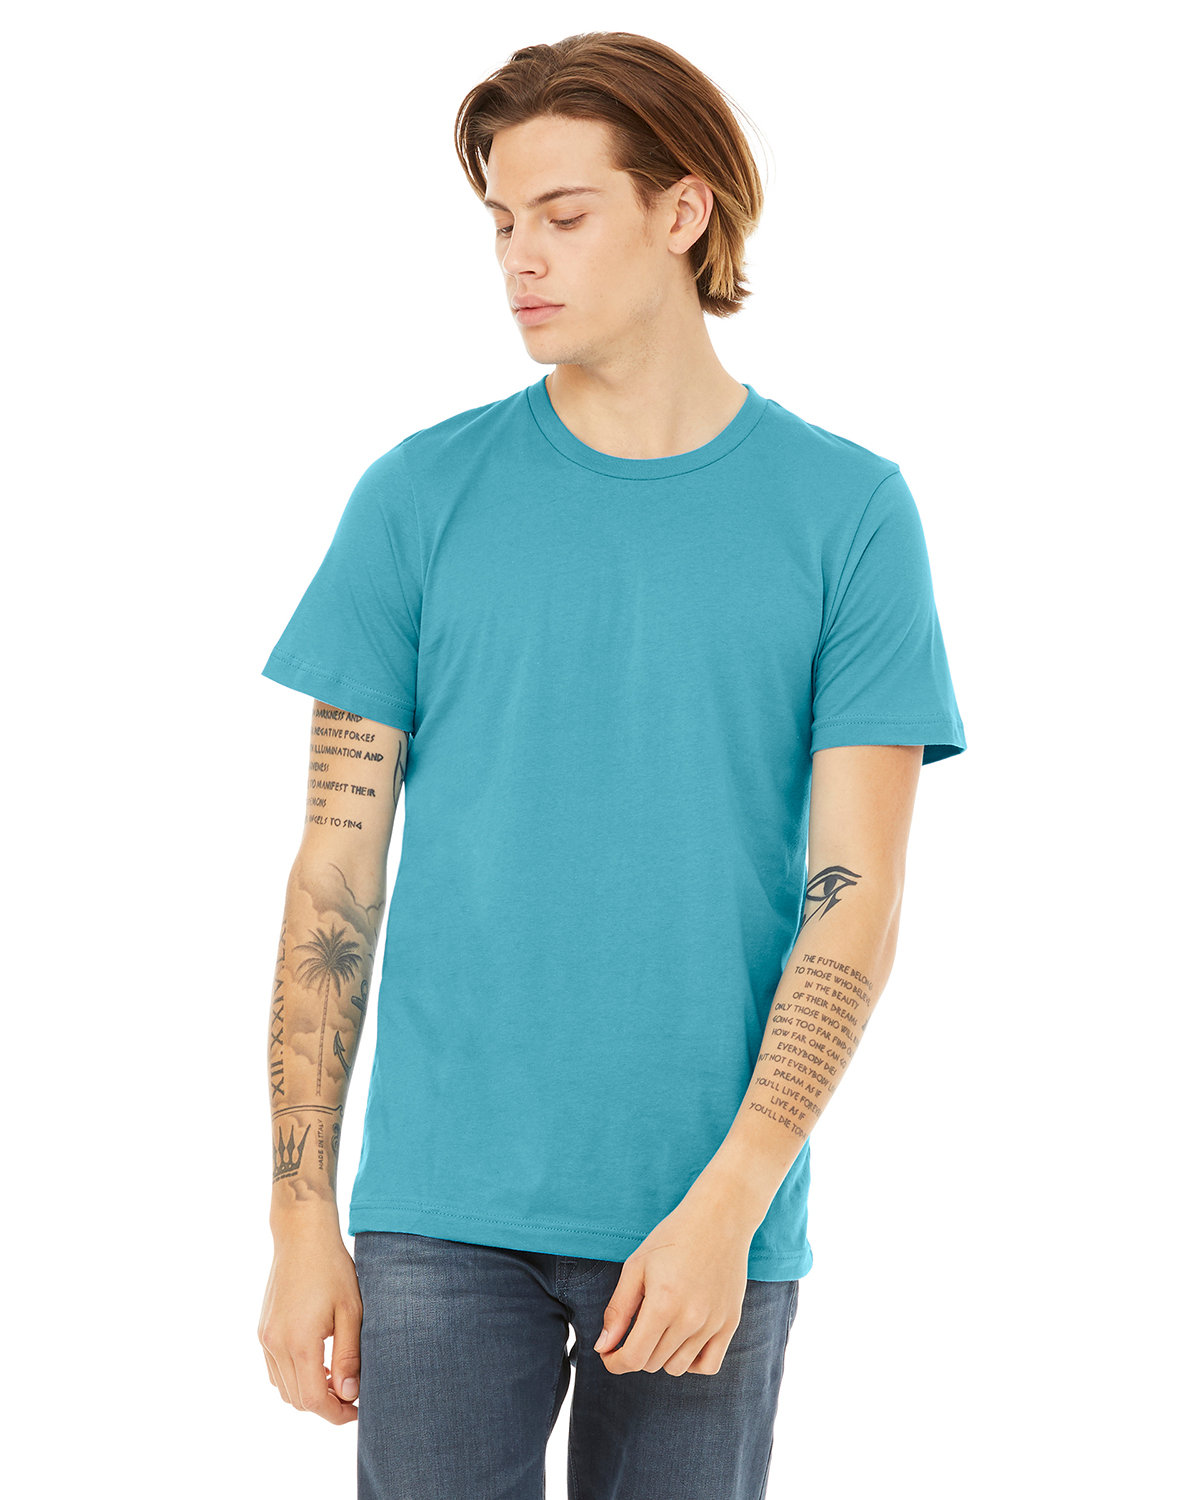 Bella + Canvas Unisex Heather CVC T-Shirt HEATHER AQUA